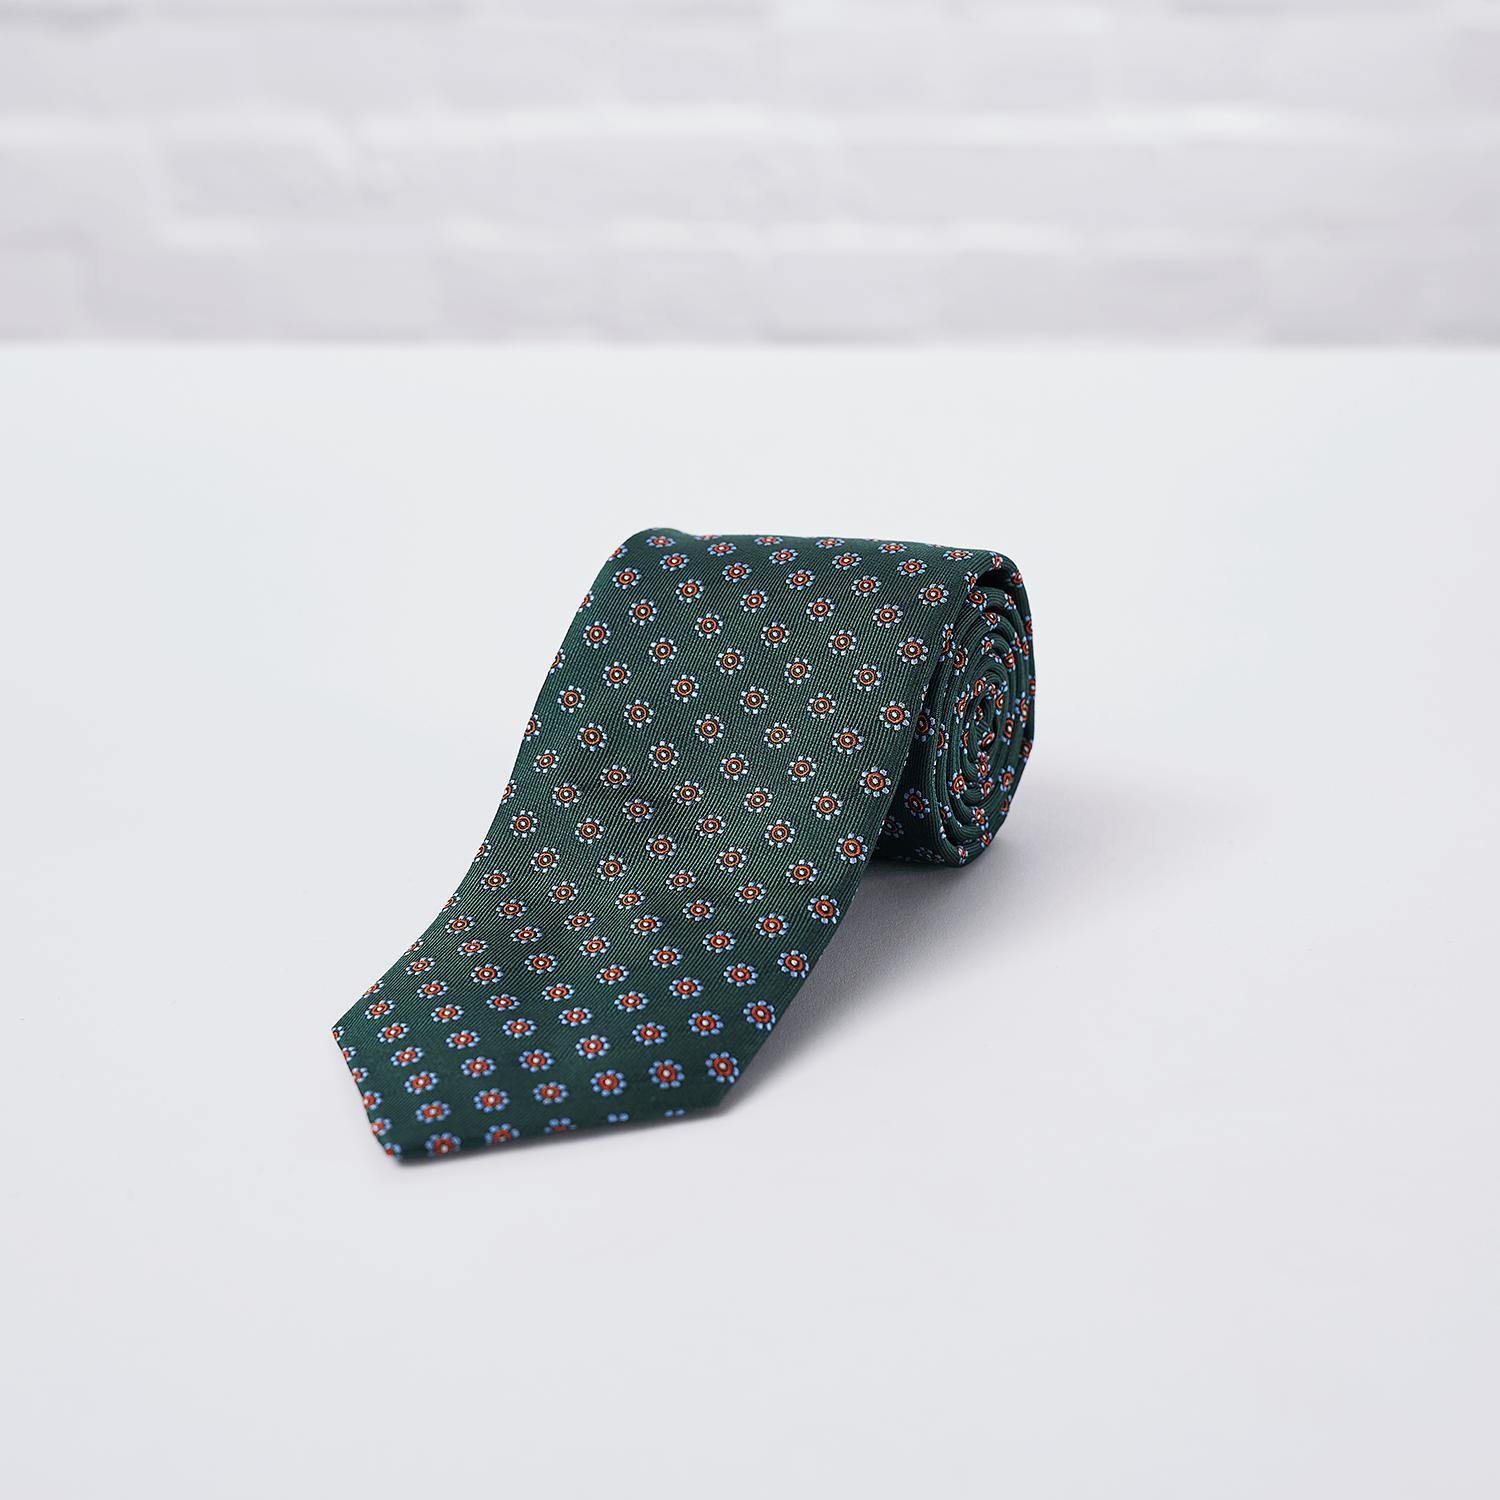 Green Daisy Woven Silk Tie Hand Finished - British Made